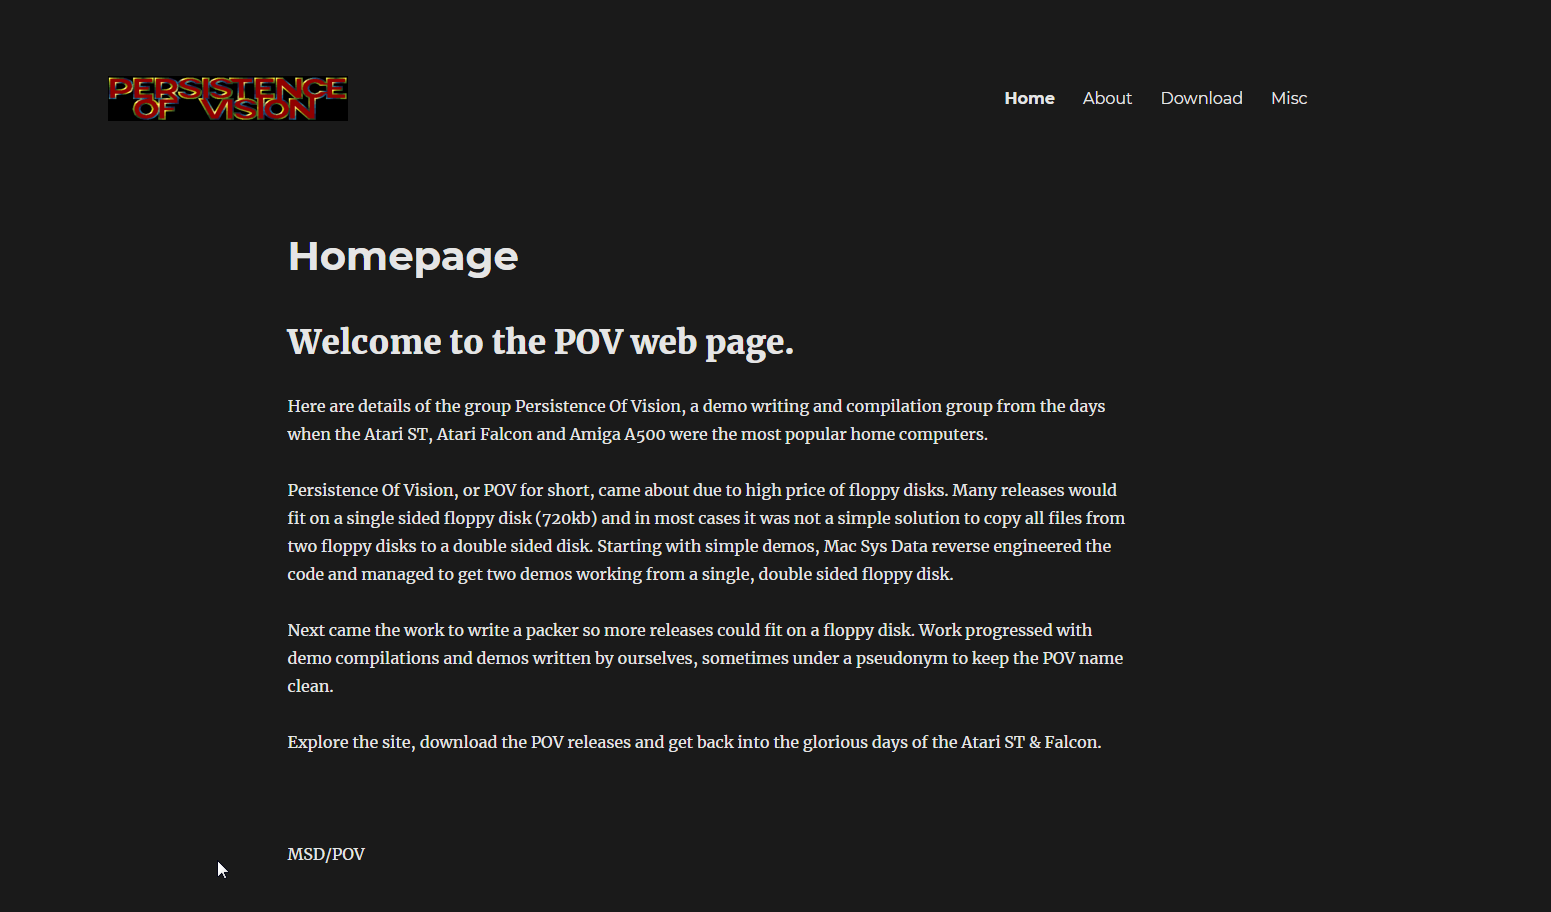 Screenshot of the website Persistence Of Vision